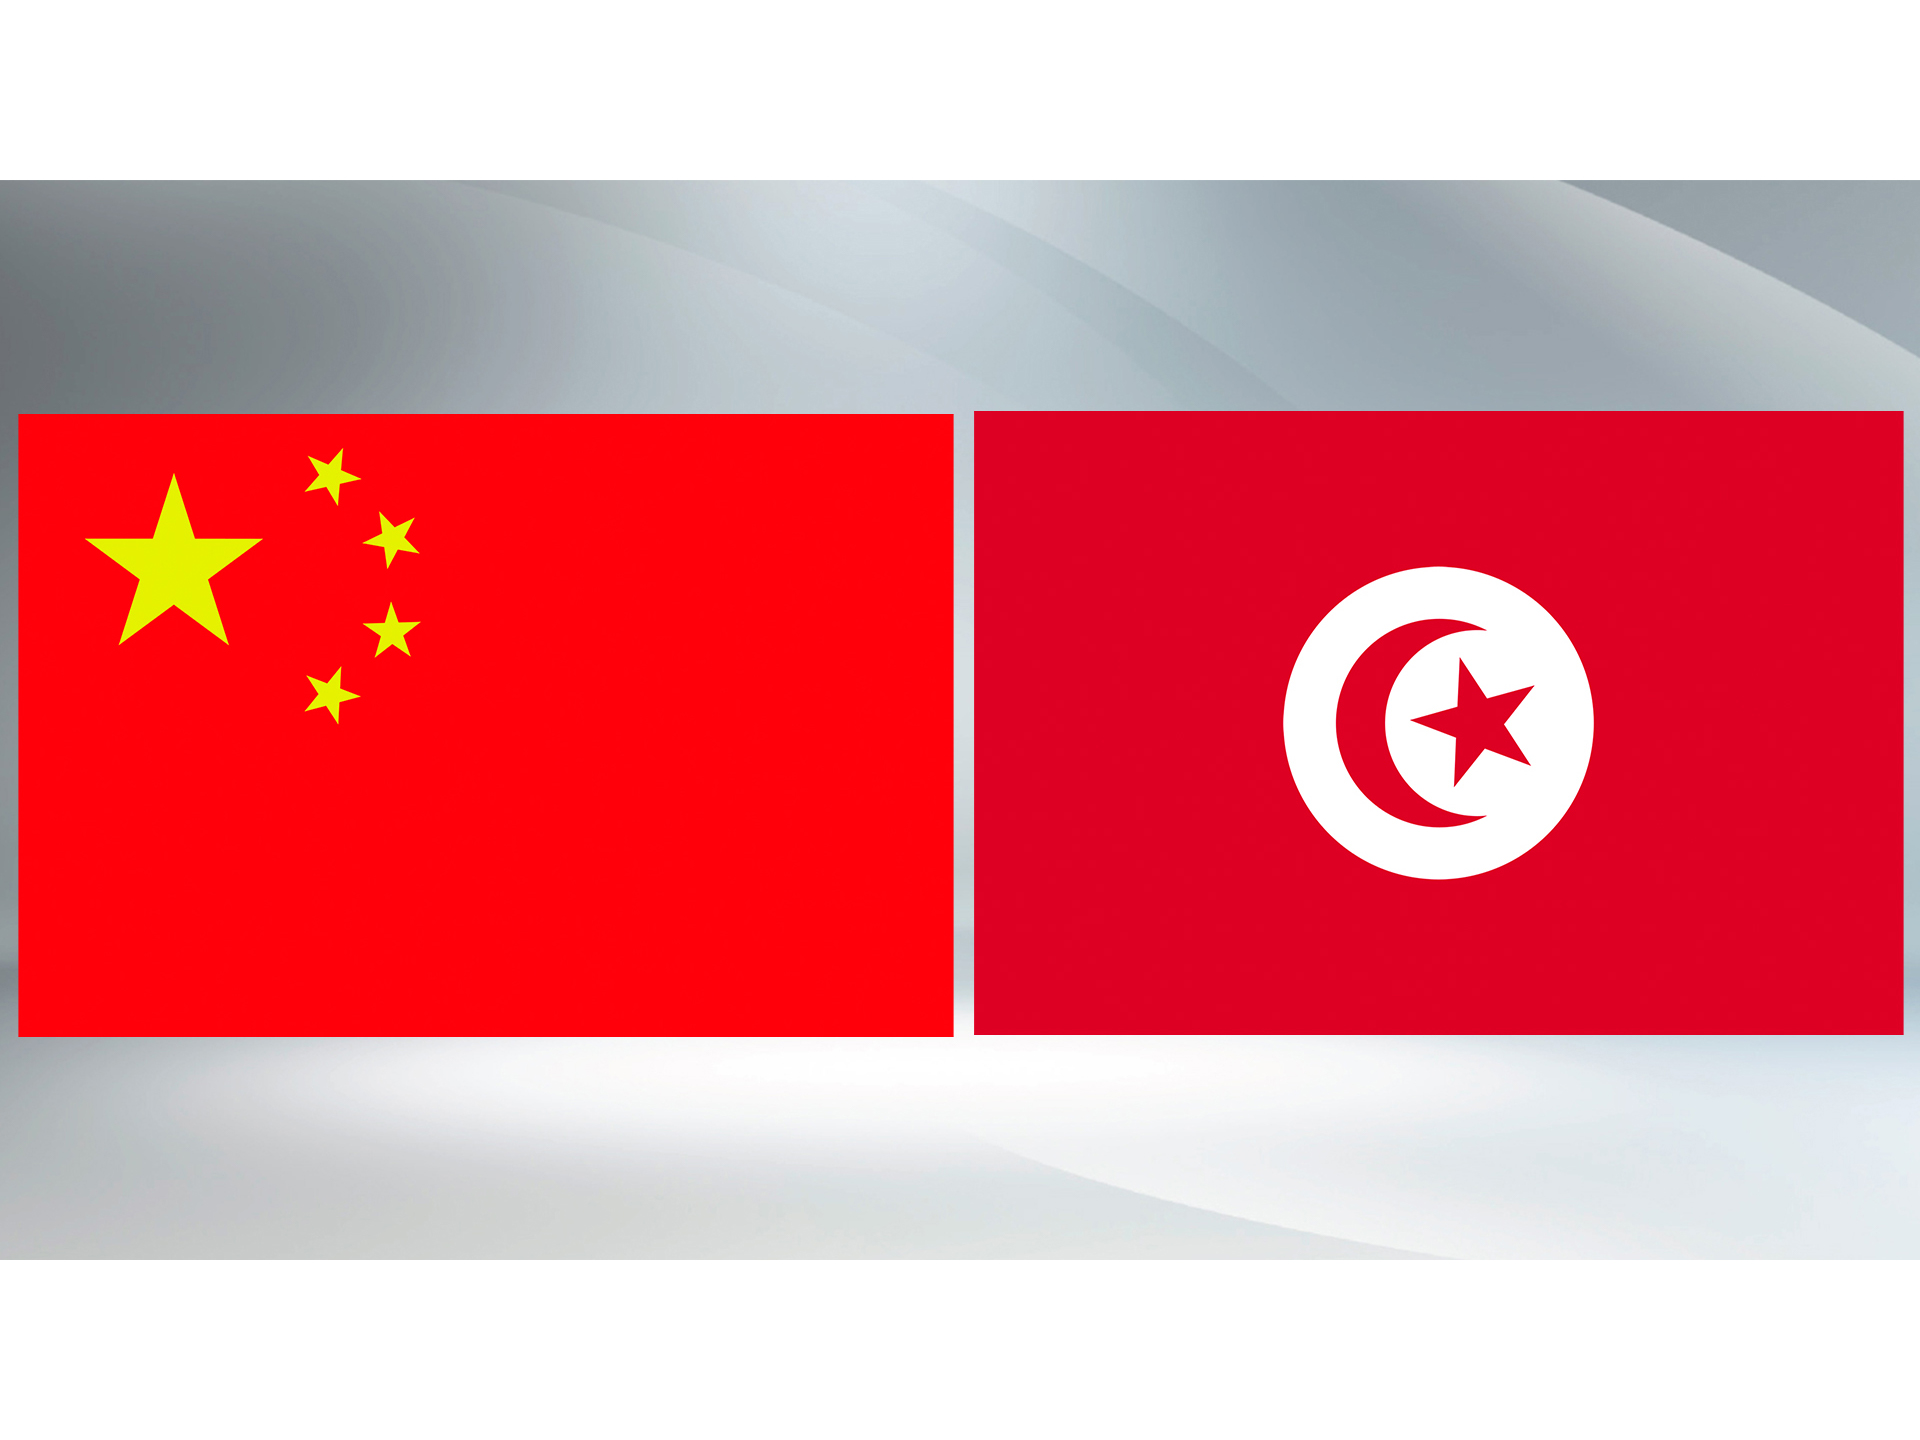 Chinese leaders send condolences over decease of Tunisian president